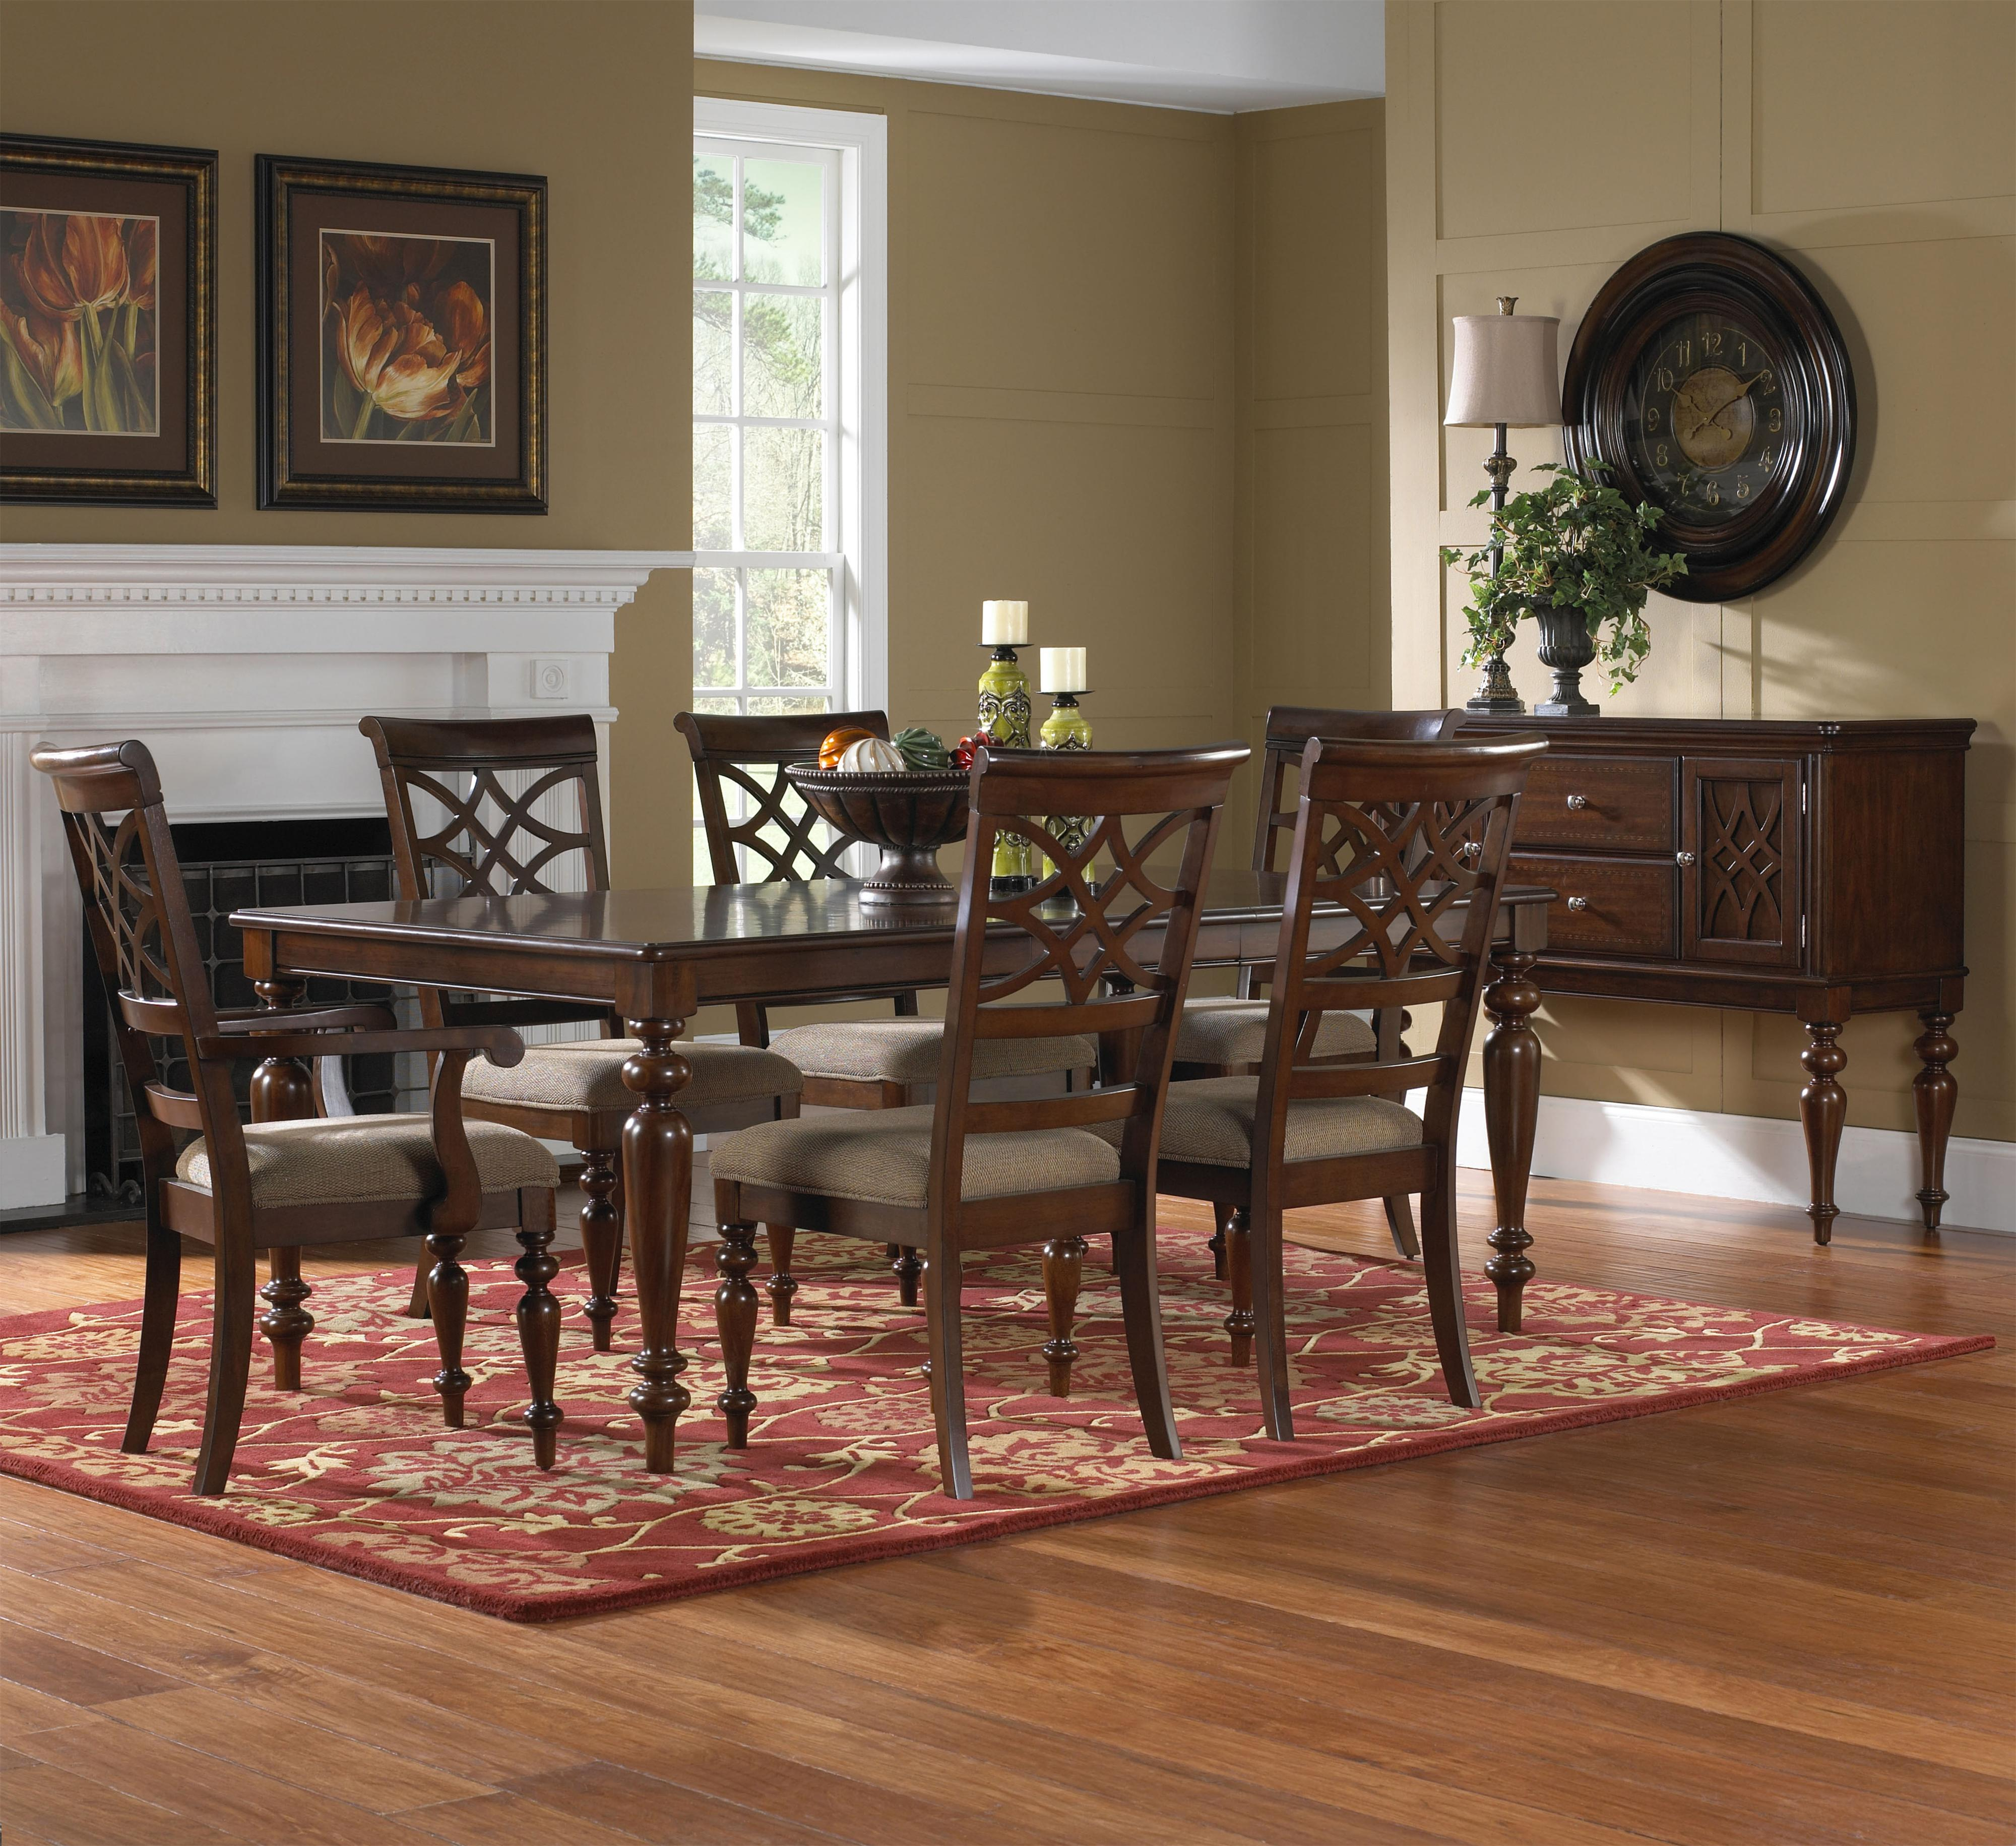 Standard Furniture Woodmont 7 Piece Table U0026 Chair Set   Item Number:  19181+2x19185